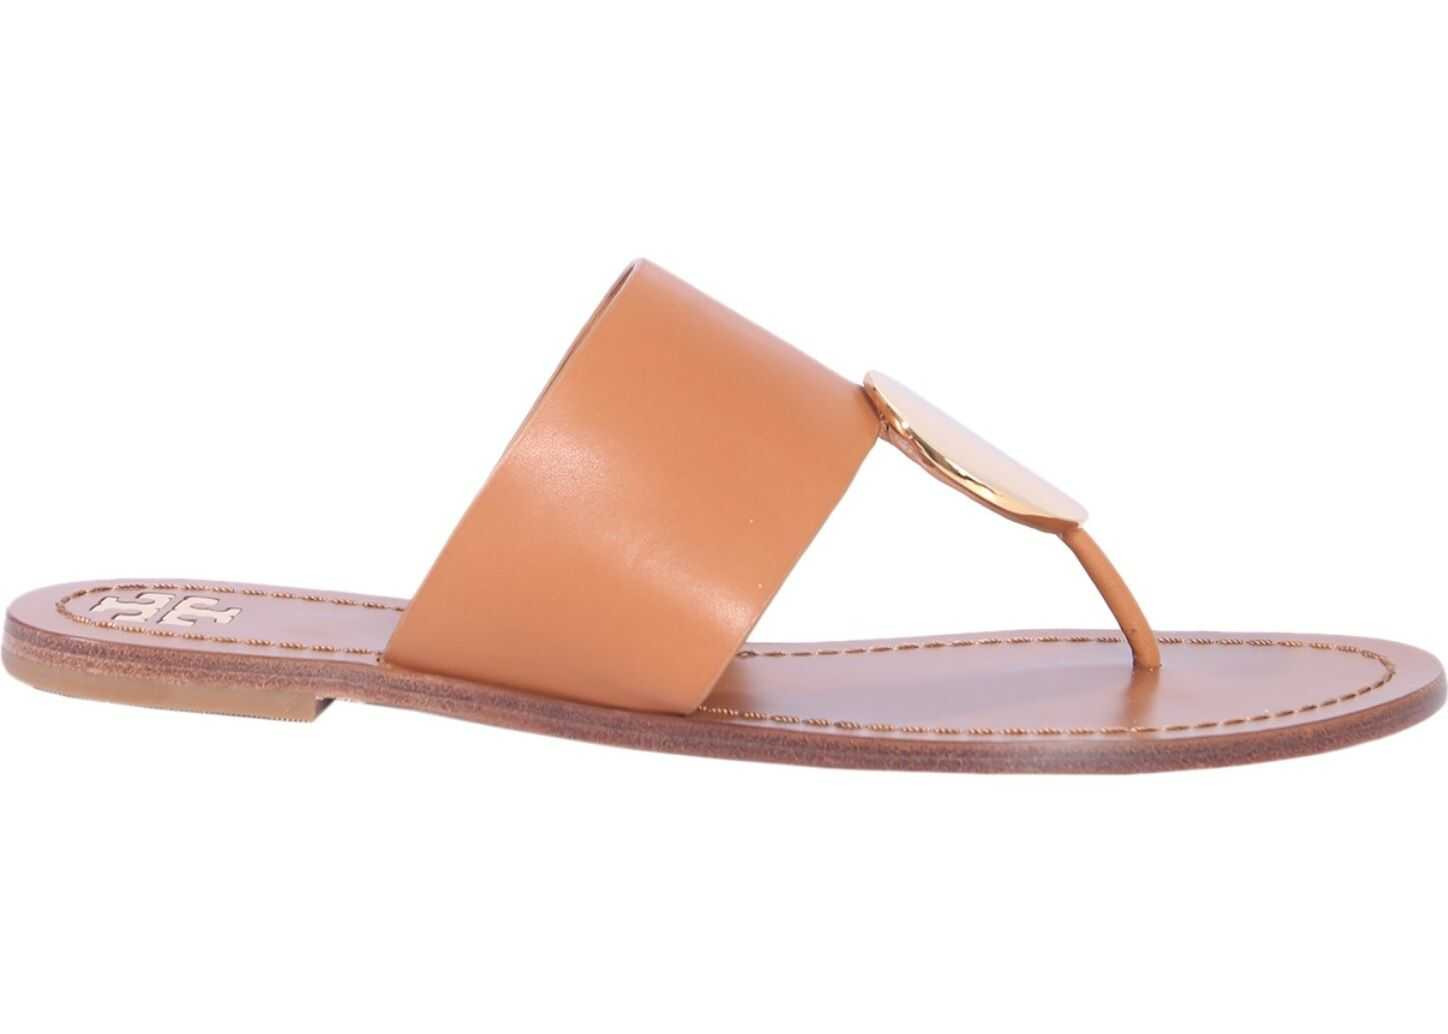 Tory Burch Pathos Disk Sandals BROWN